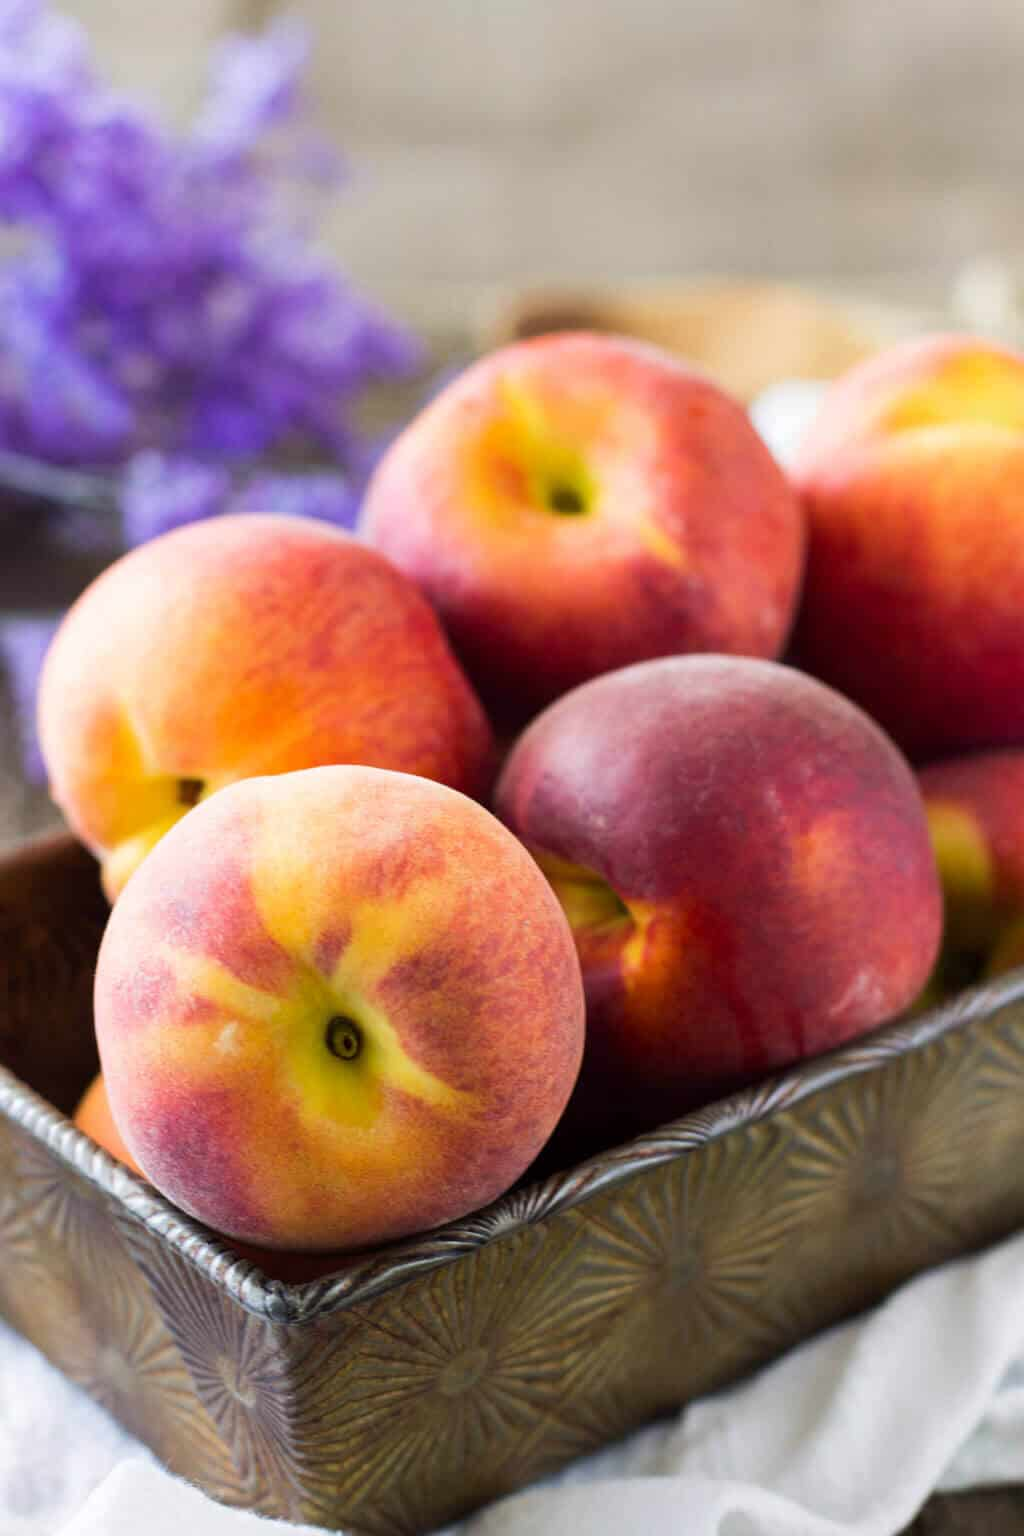 Peaches stacked in a metal dish